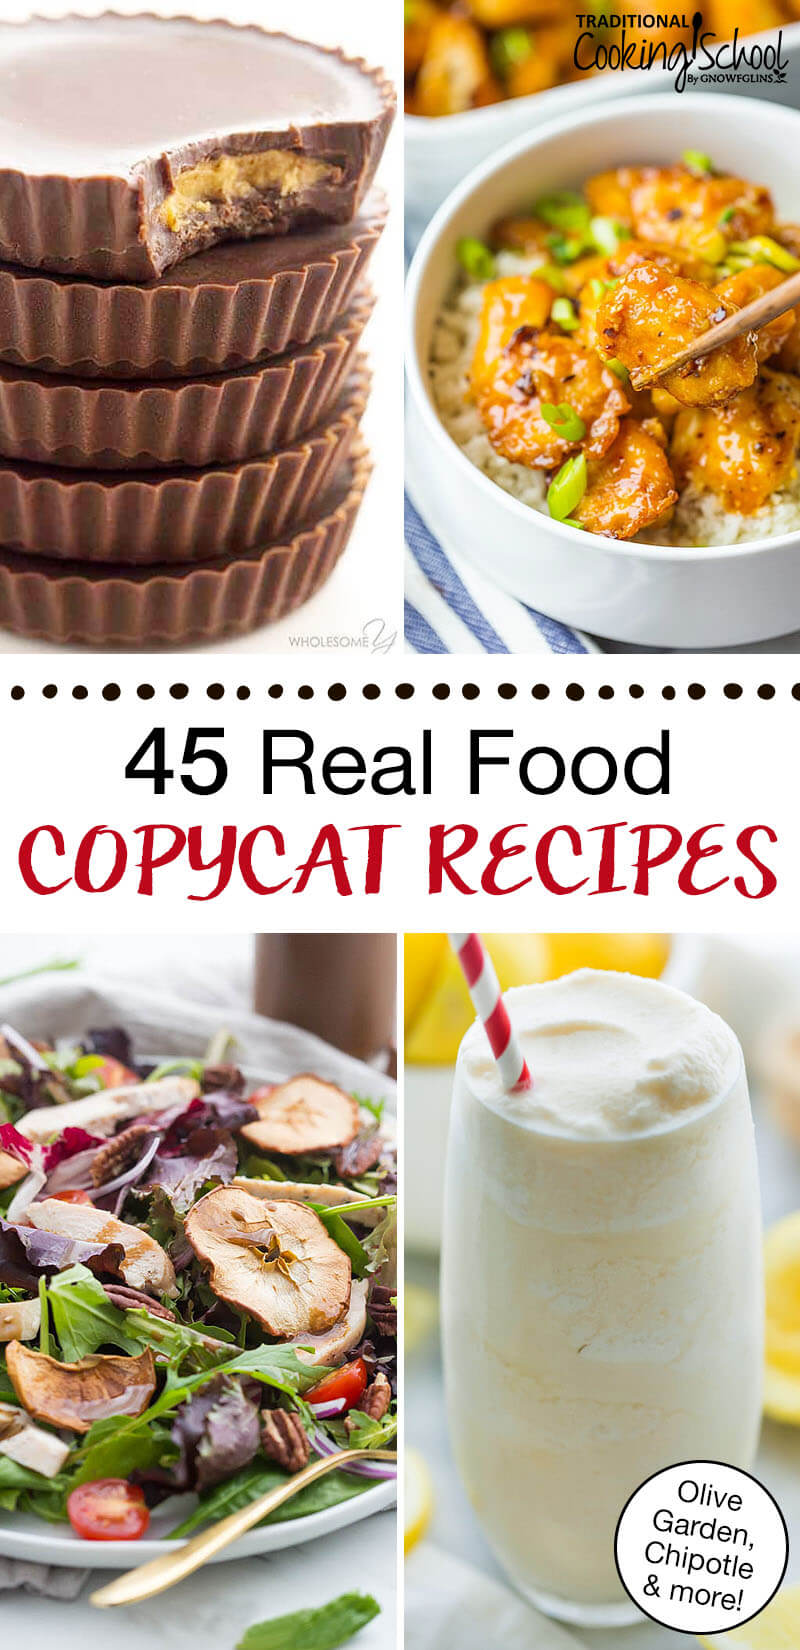 "photo collage of copycat recipes, such as healthy Reese's peanut butter cups and Chipotle beef barbacoa bowls, with text overlay: ""45 Real Food Copycat Recipes (Olive Garden, Chipotle, and more!)"""